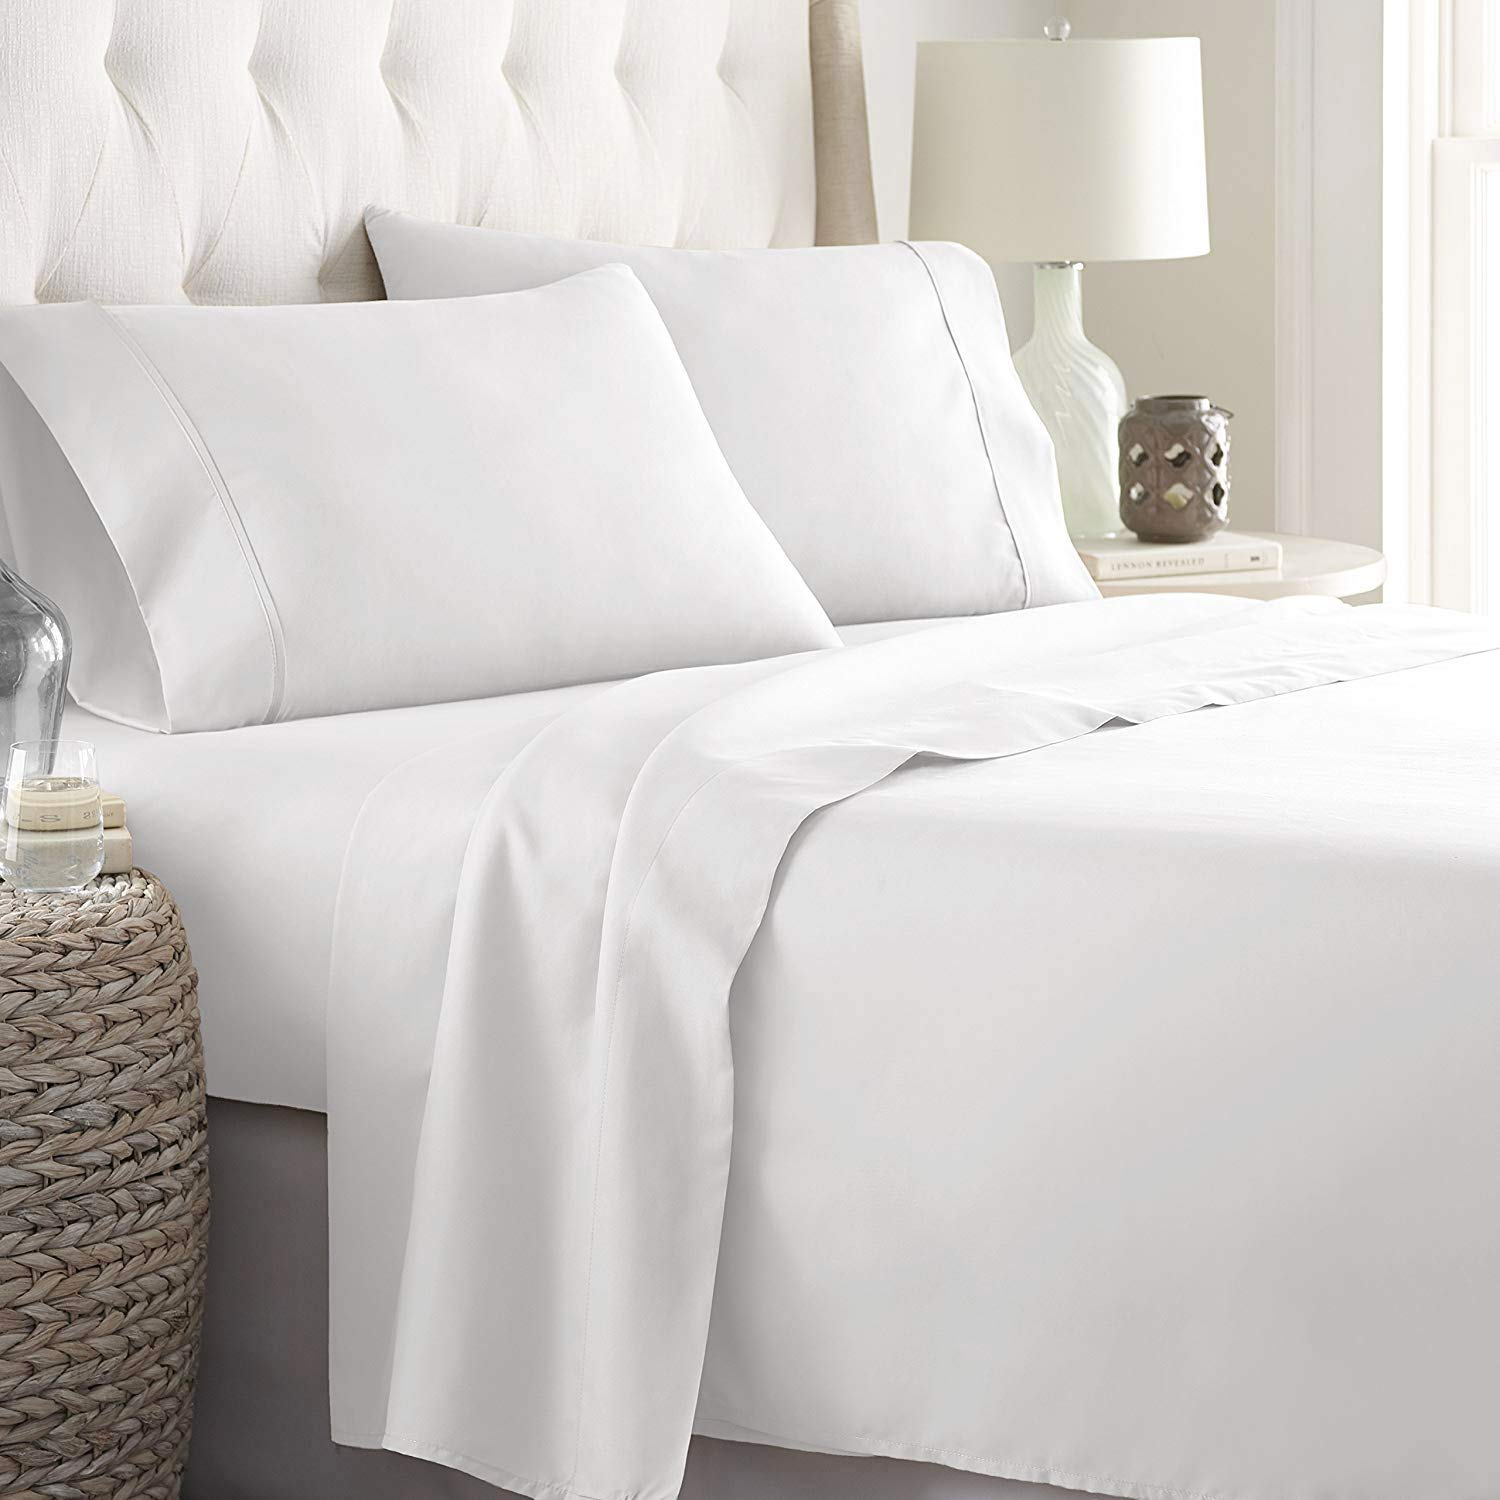 LINENWALAS 800 Thread Count 100% Egyptian Cotton Extra Long Twin Bed Sheet – Satin Weave Bedding Set | Silk Like Soft & Pockets, Breathable Set of 3 (Twin XL, White)